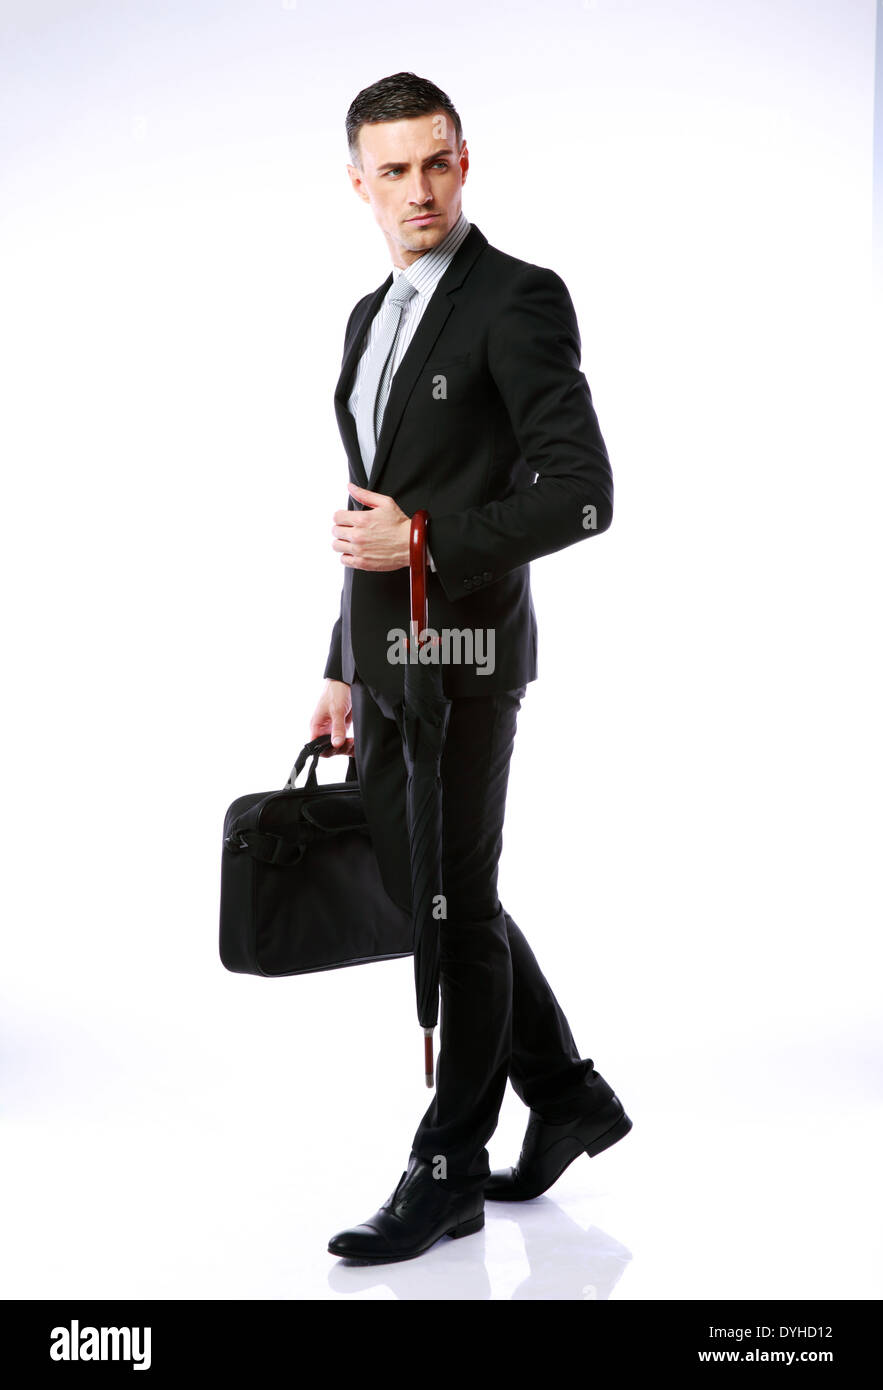 Full-length portrait of a confident businessman standing with umbrella and laptop bag - Stock Image